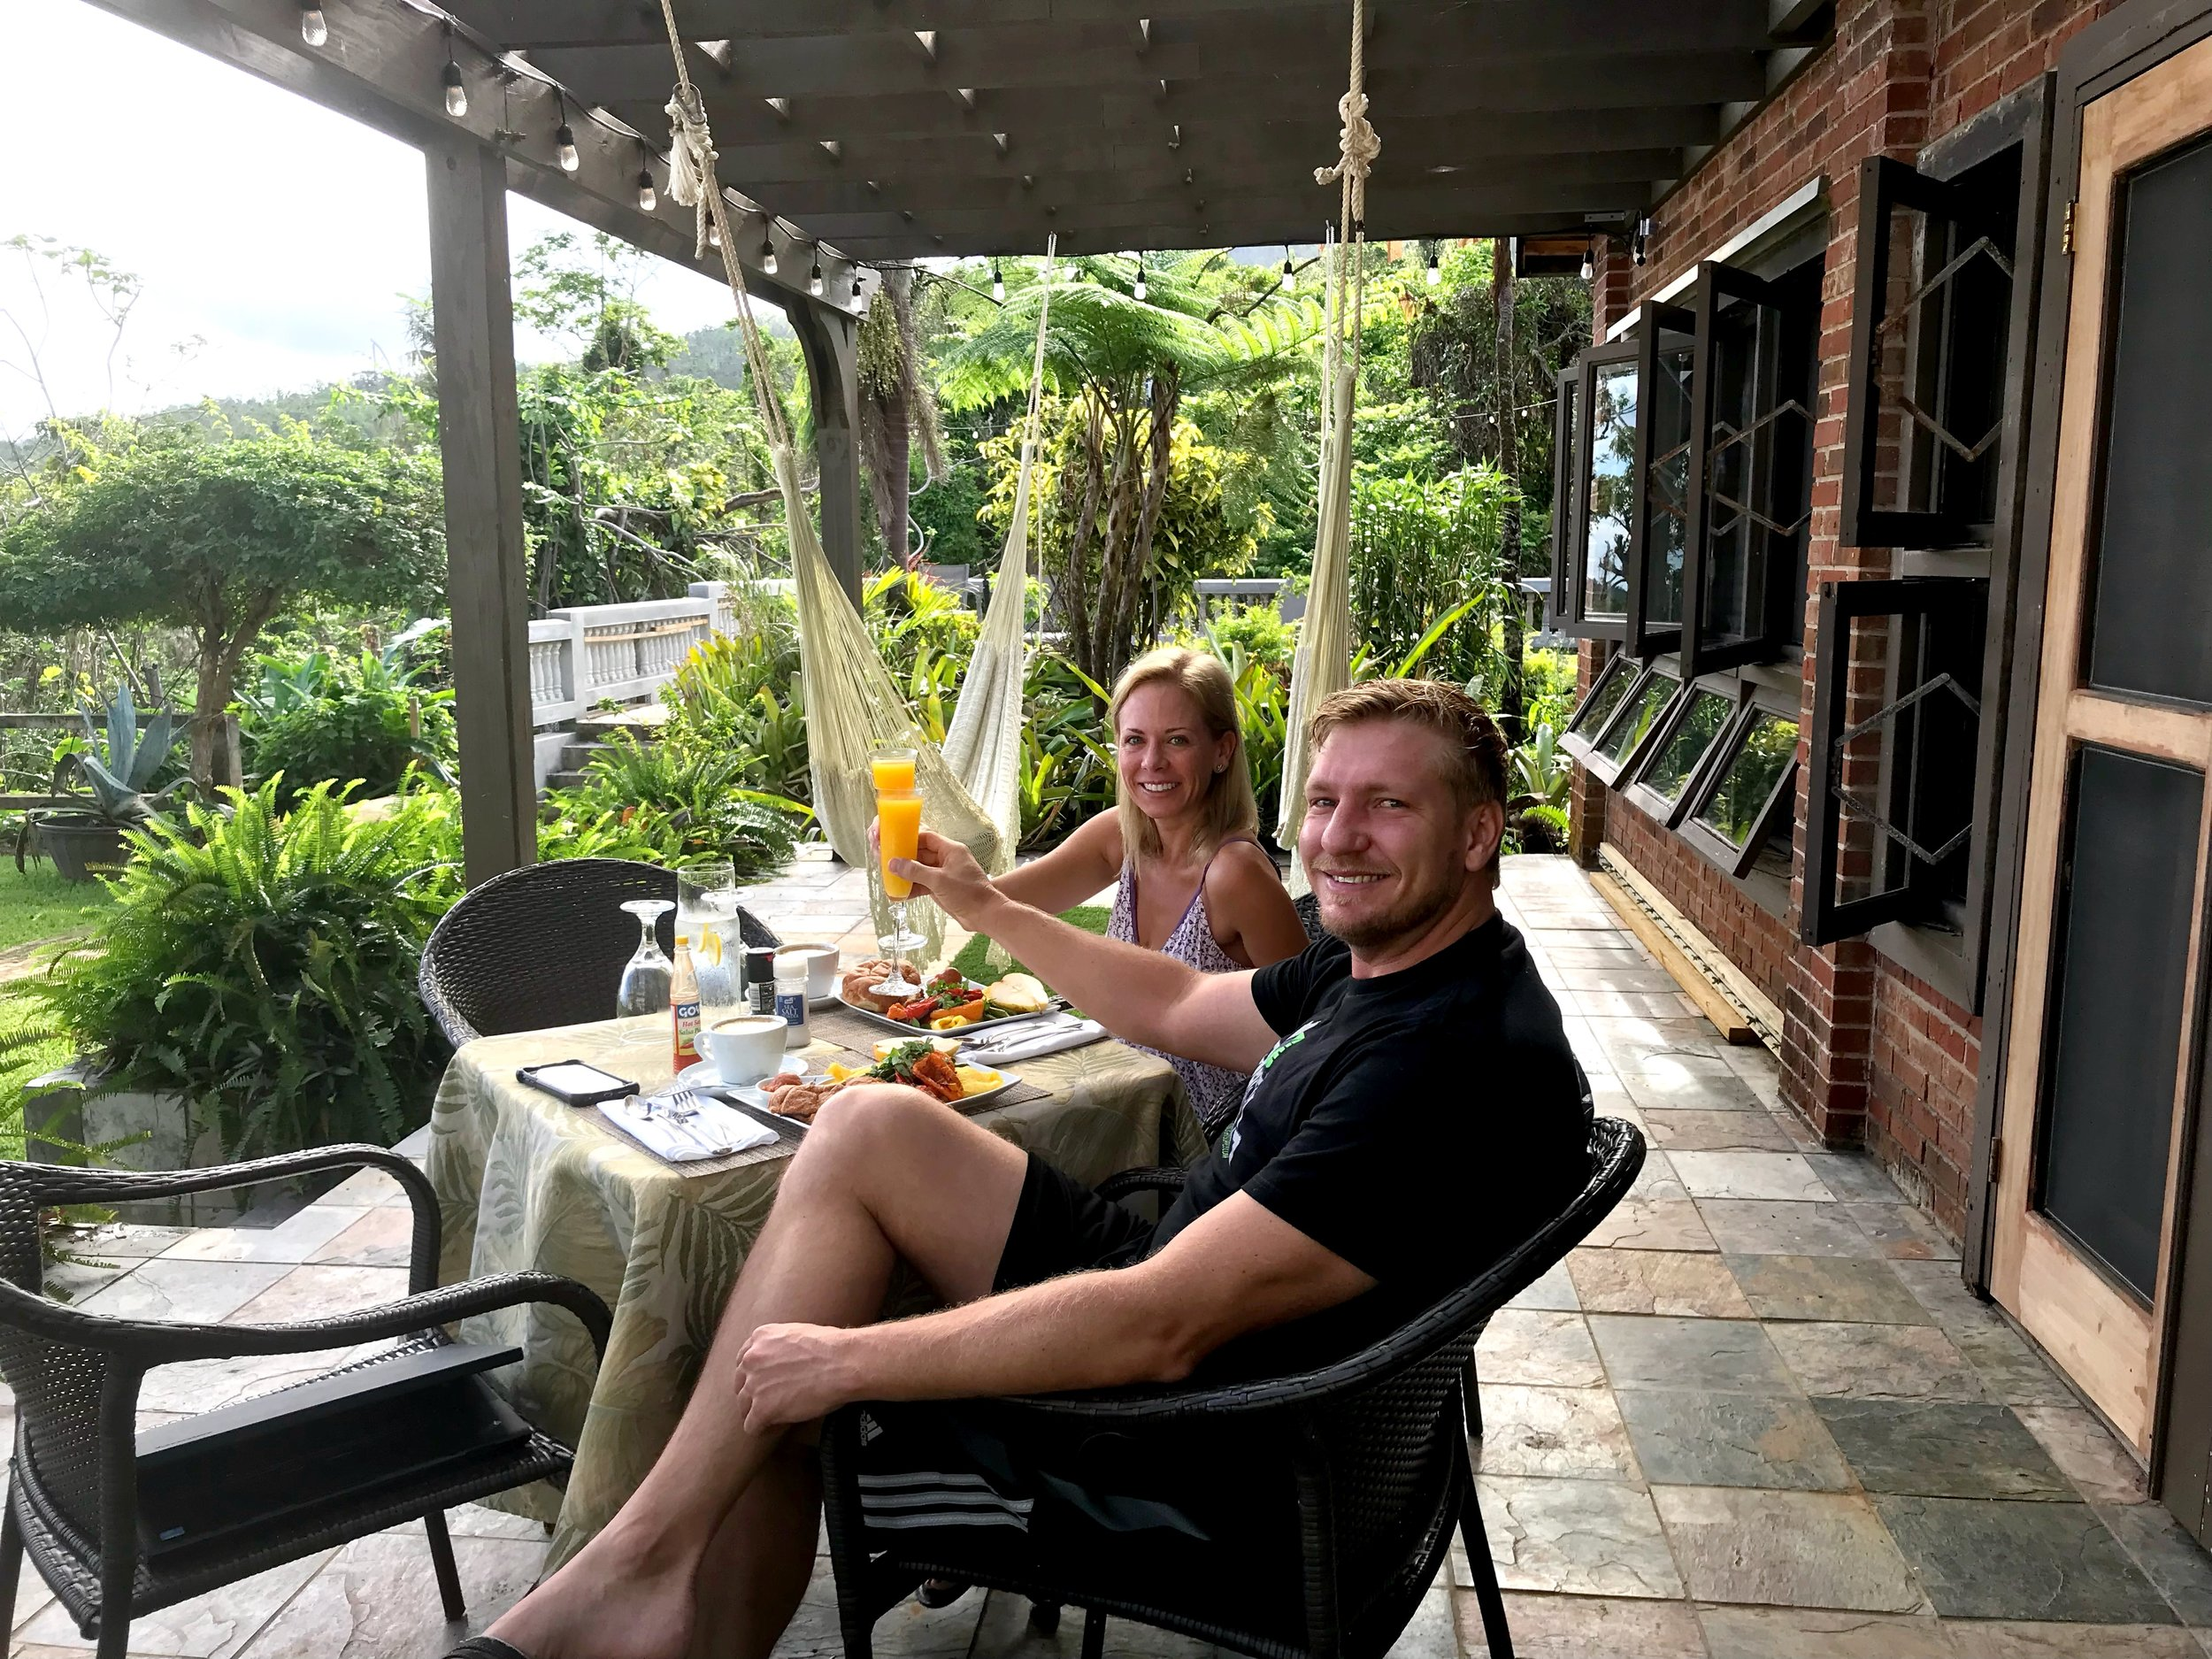 """Our guests from San Juan said: """"Breakfasts on the porch are just priceless and delicious besides having excellent taste in all the details of the presentation""""."""